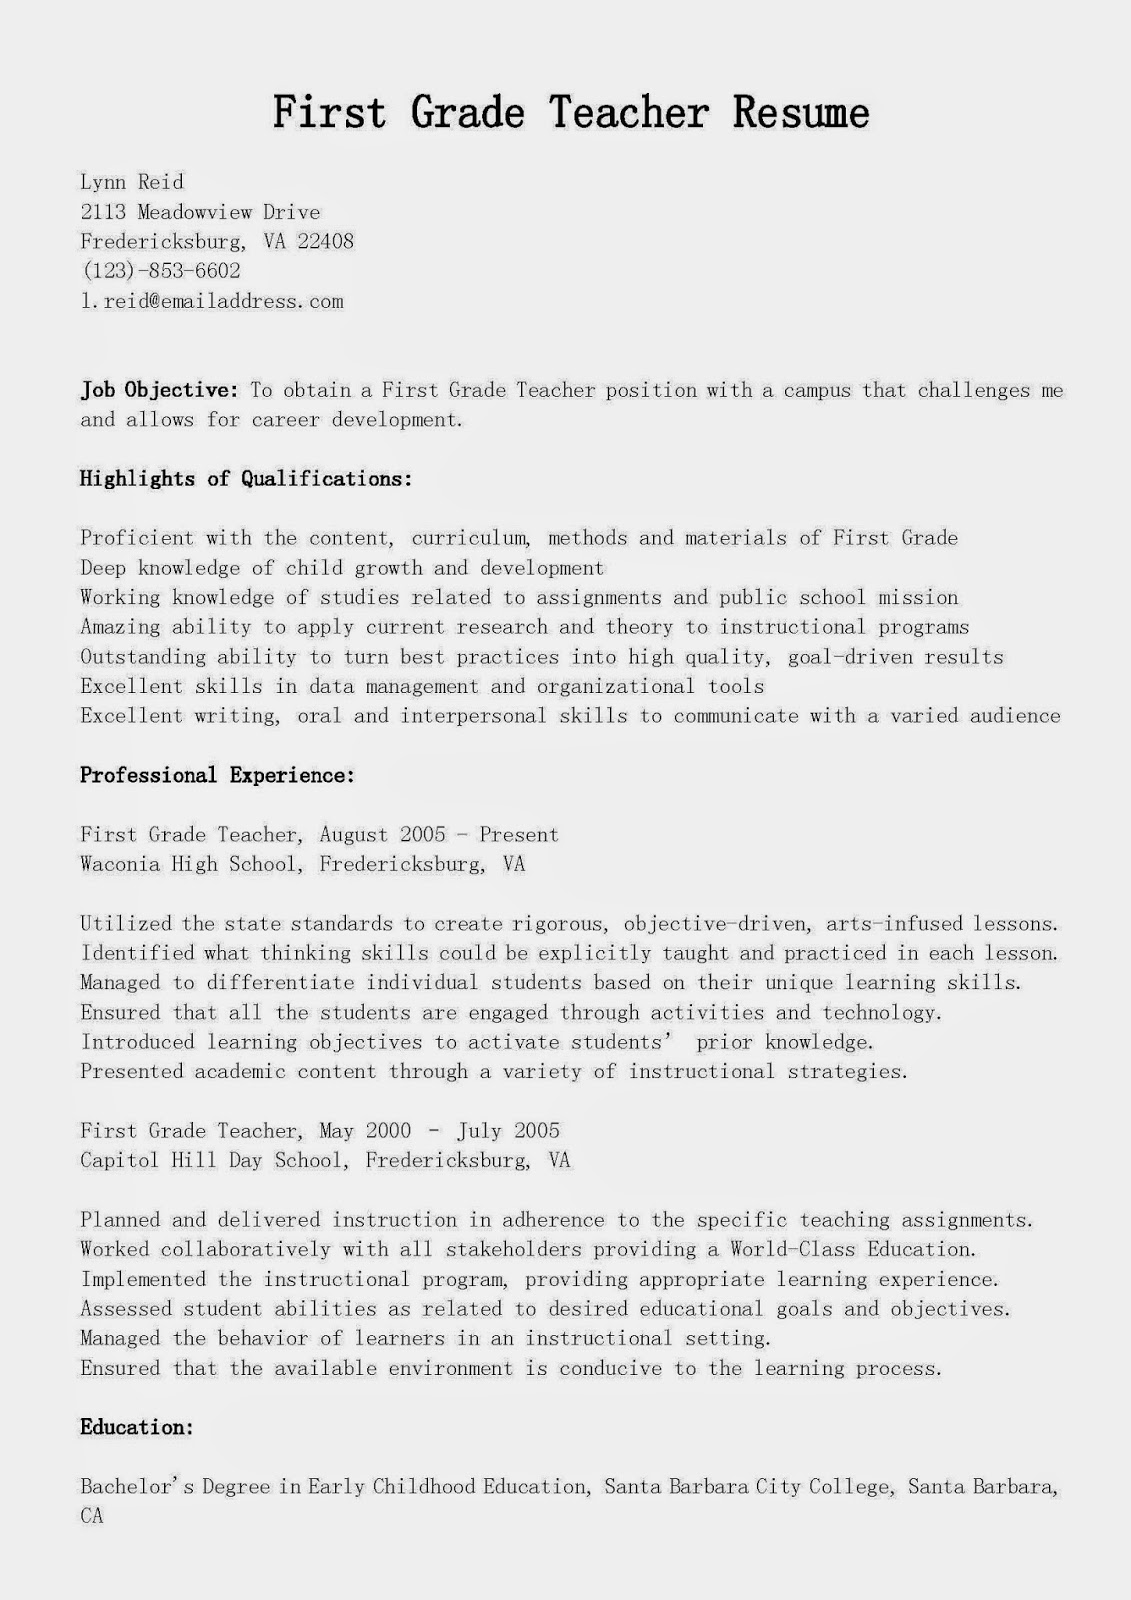 Resume Samples First Grade Teacher Resume Sample